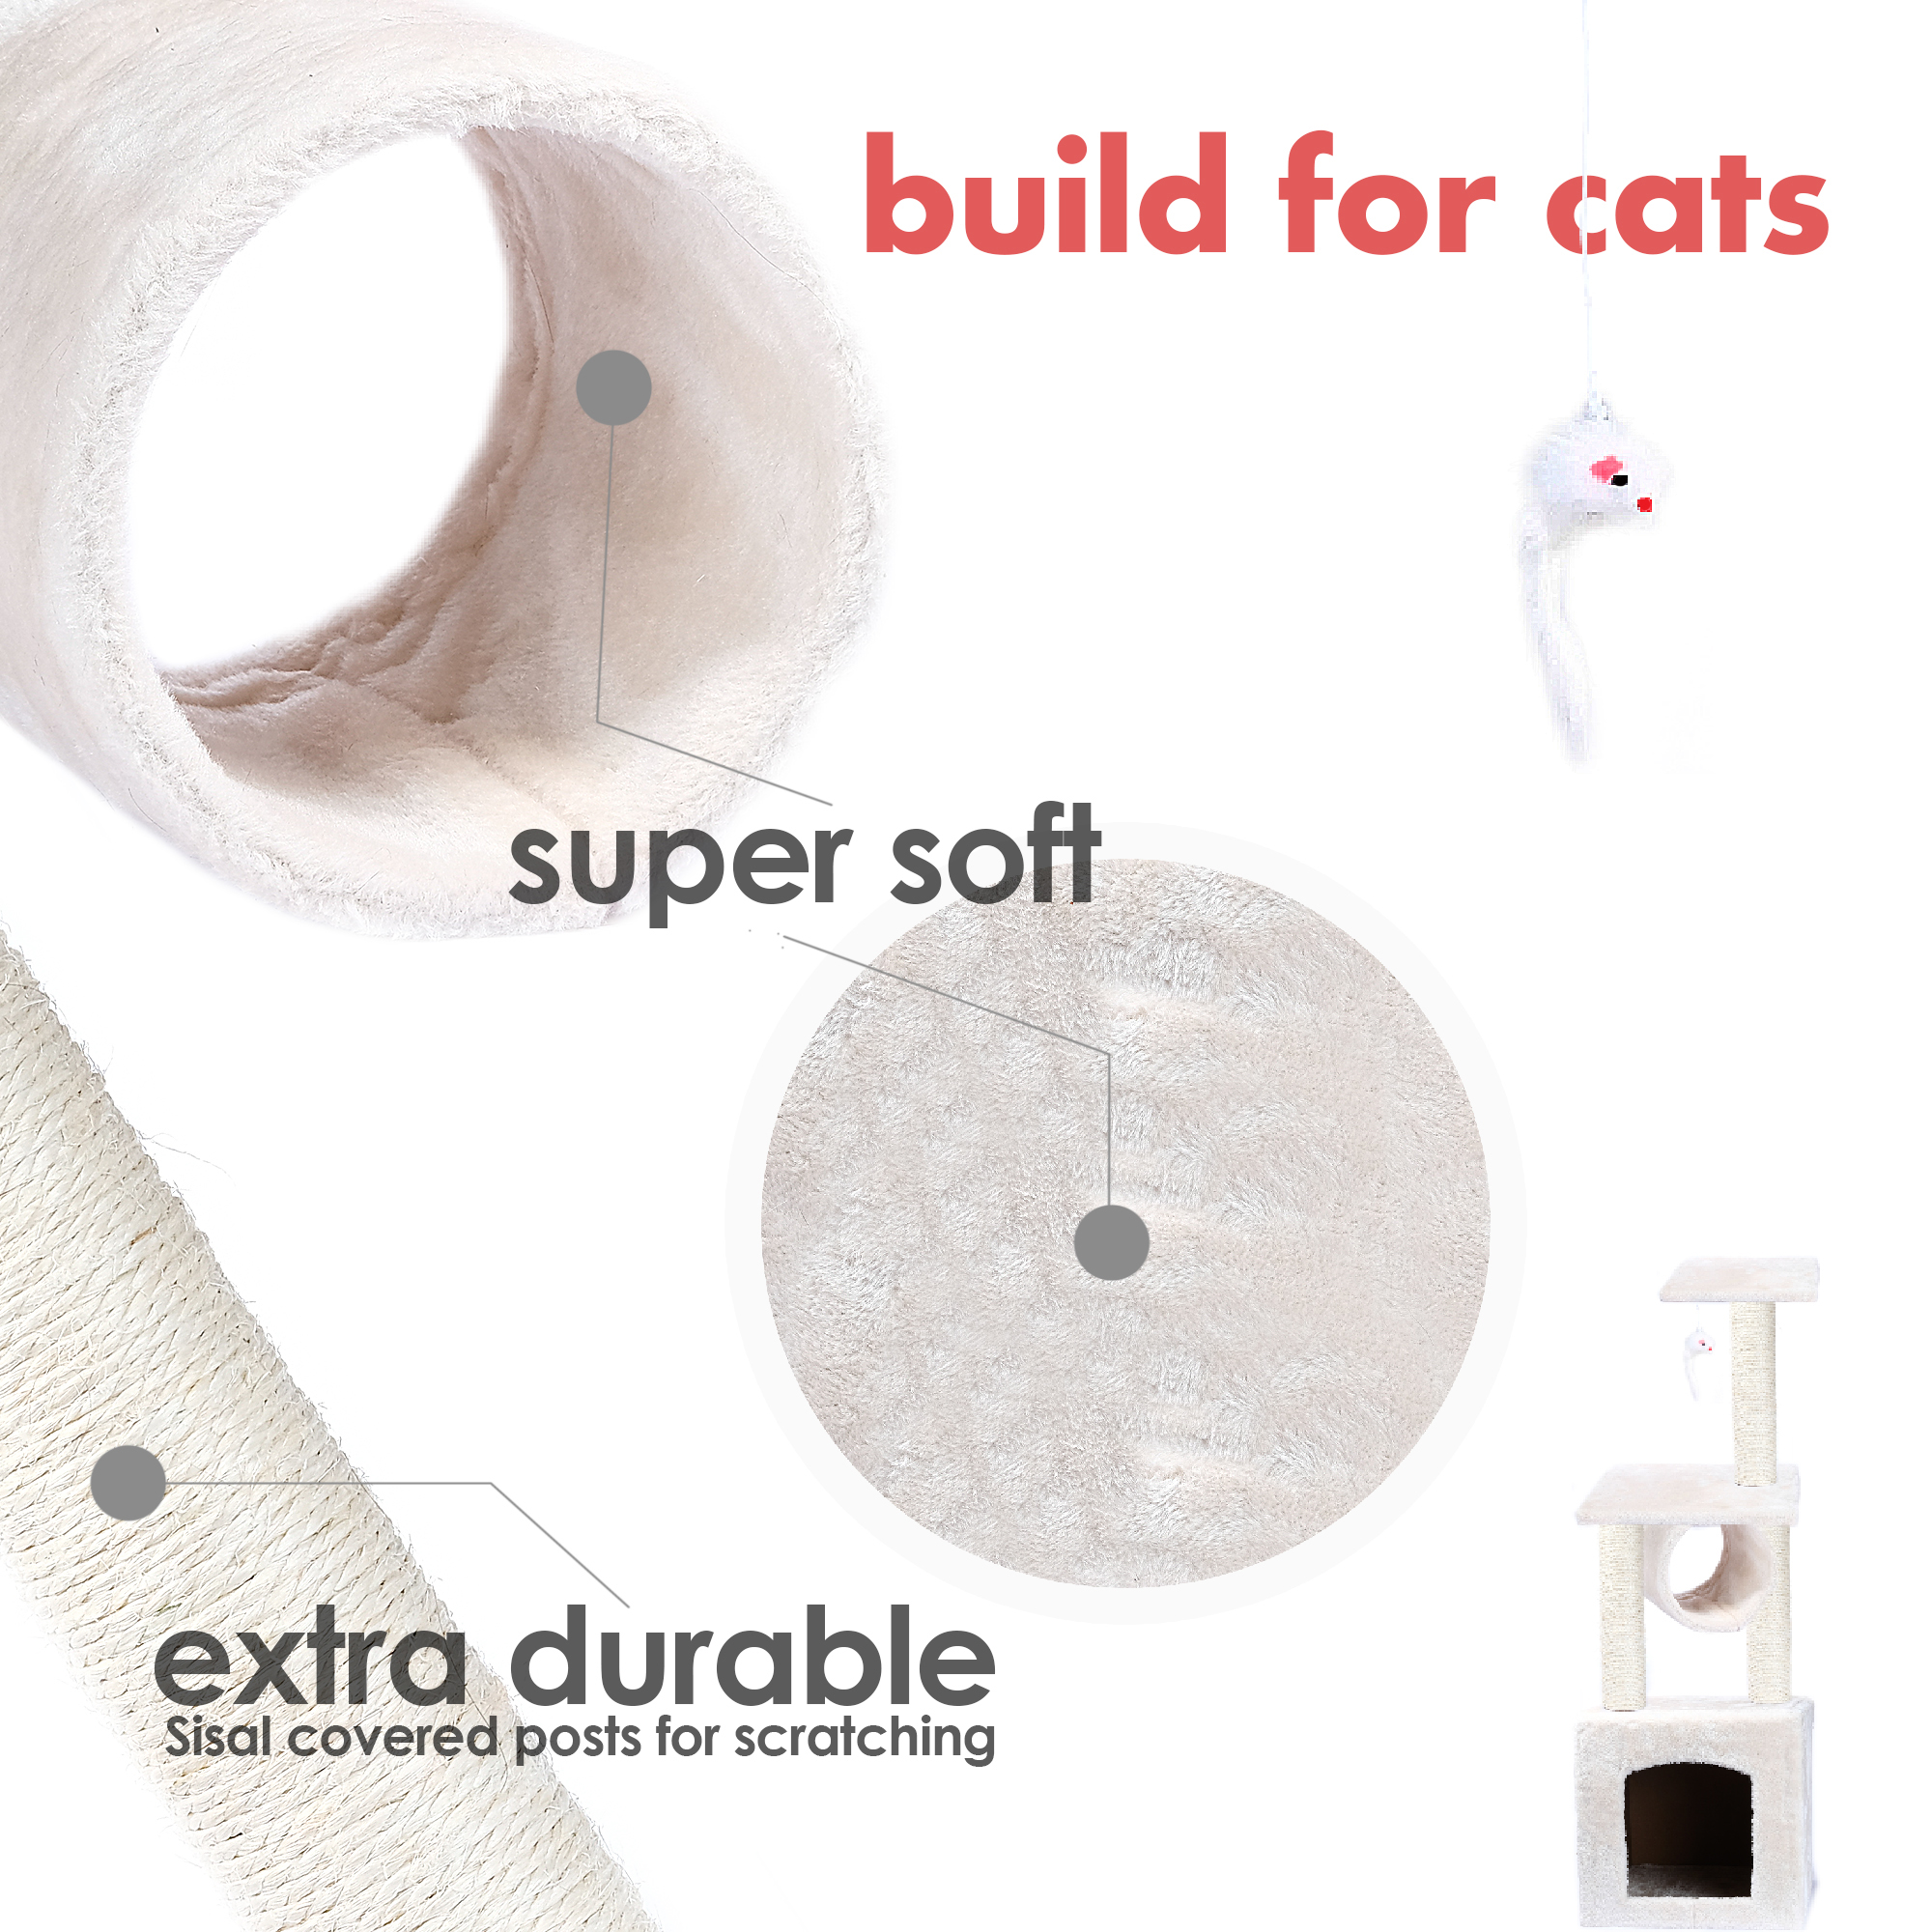 build for cats 2a.jpg